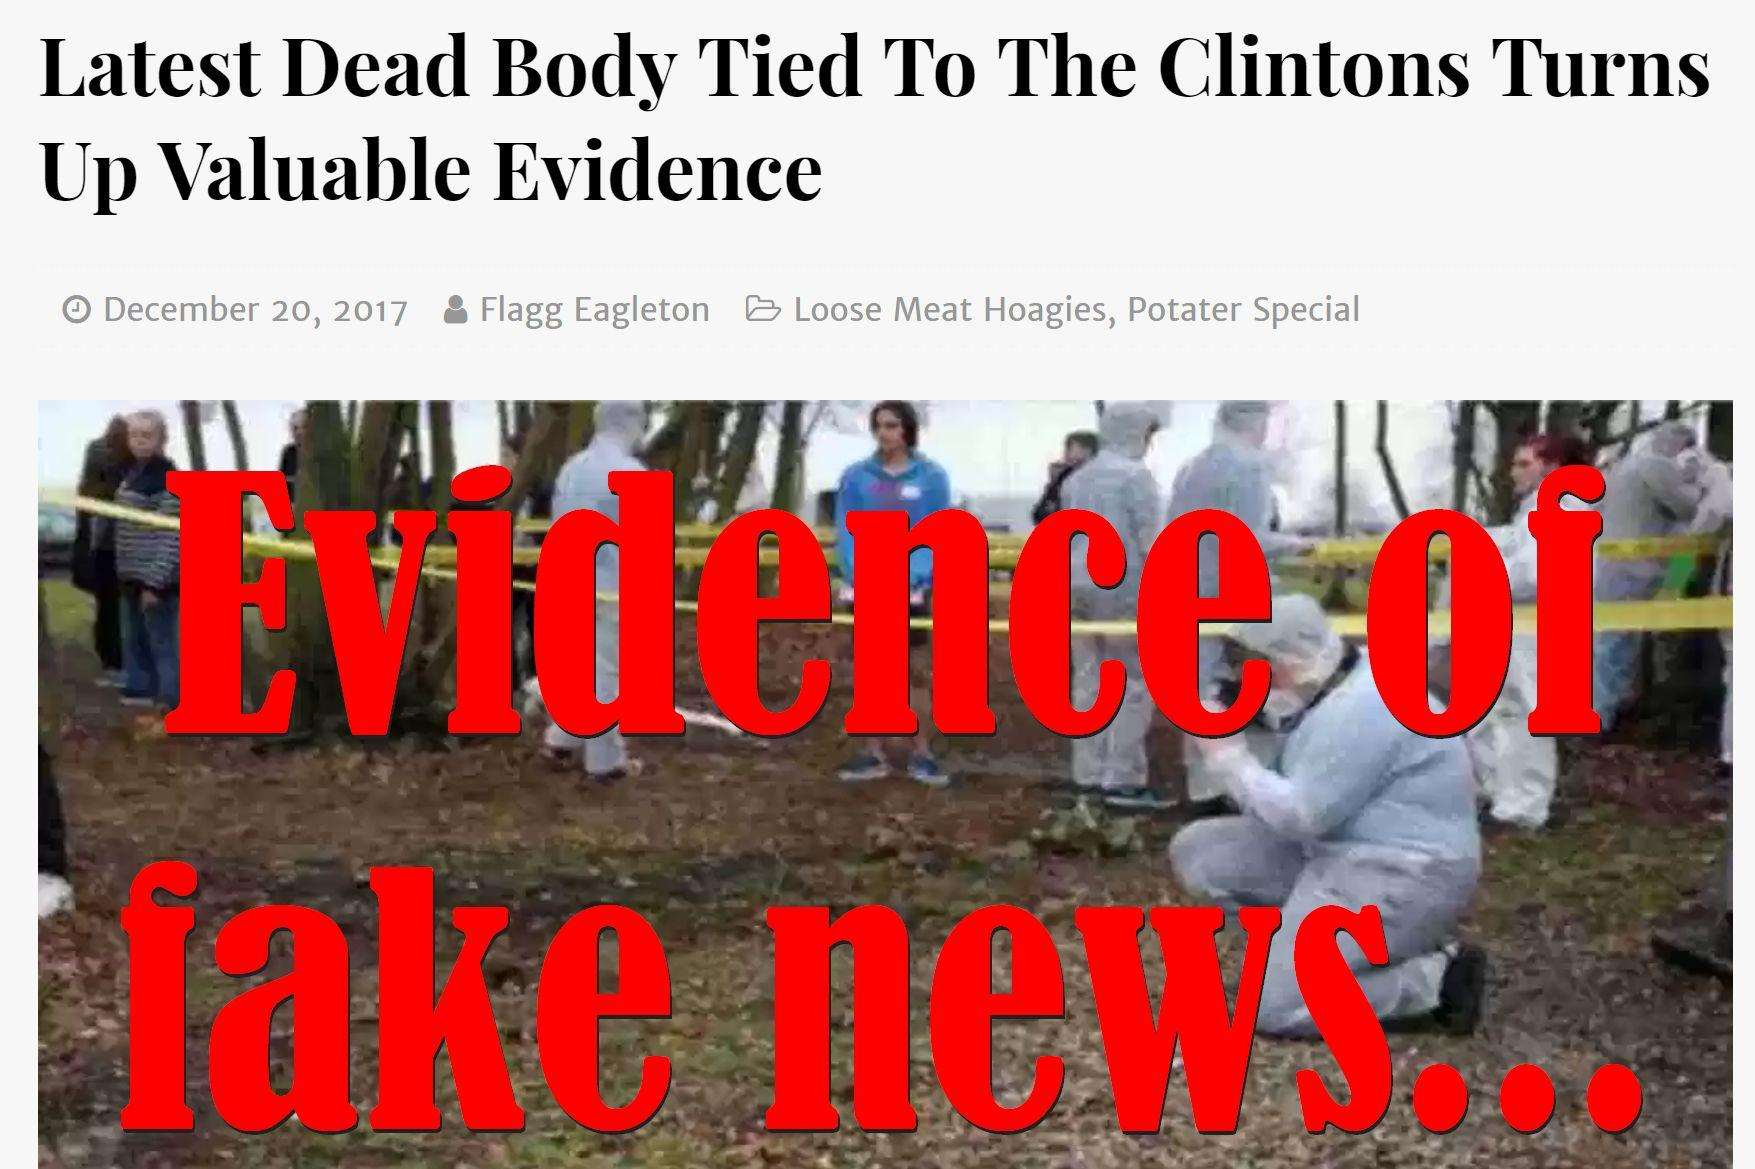 Fake News: Latest Dead Body NOT Tied To The Clintons, Did NOT Turn Up Valuable Evidence